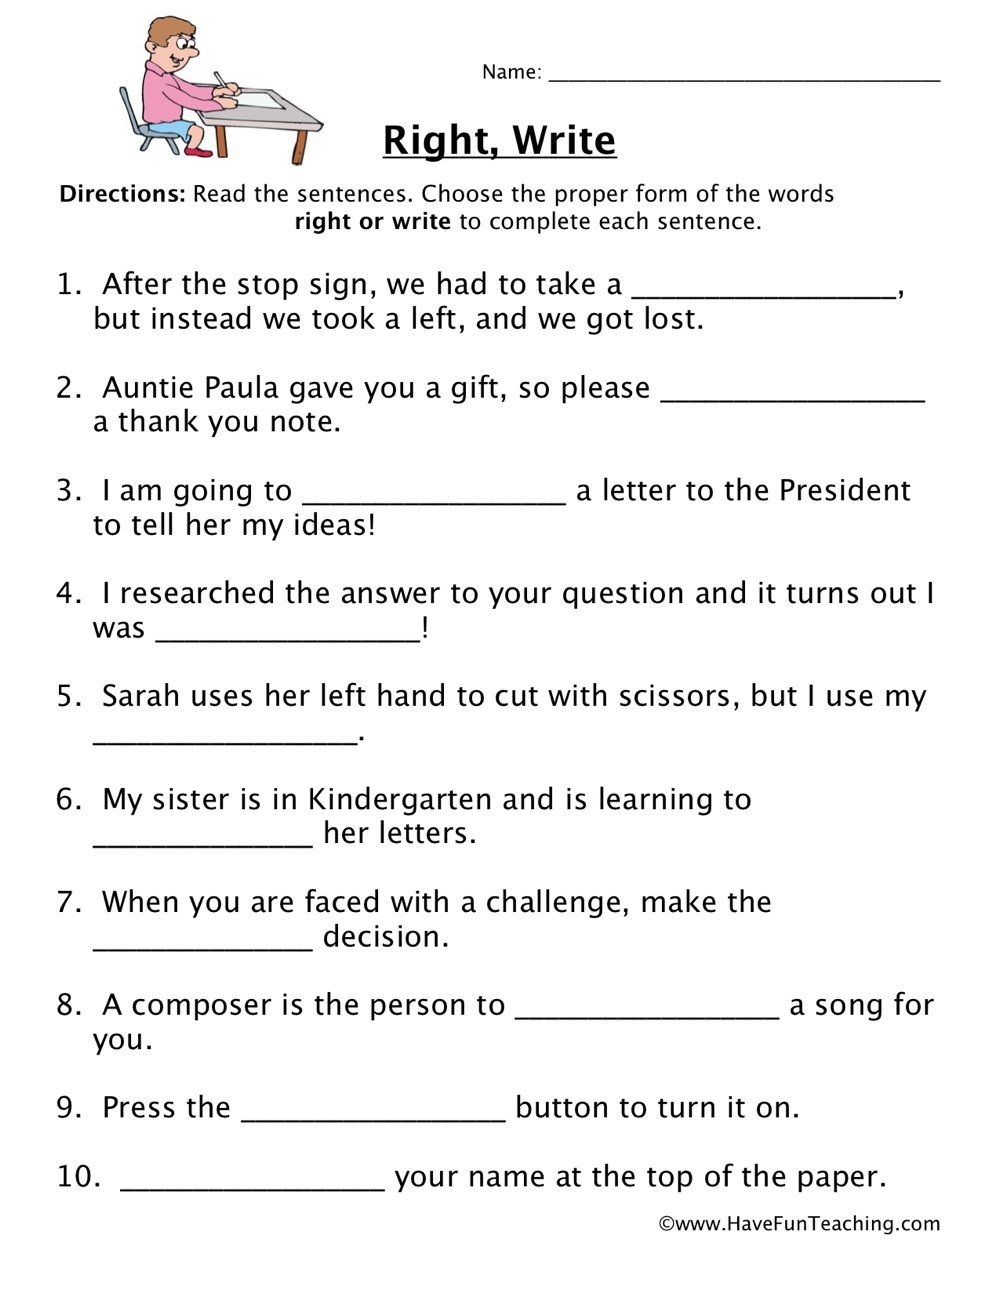 Homophones Worksheets for Grade 5 Right Write Homophones Worksheet